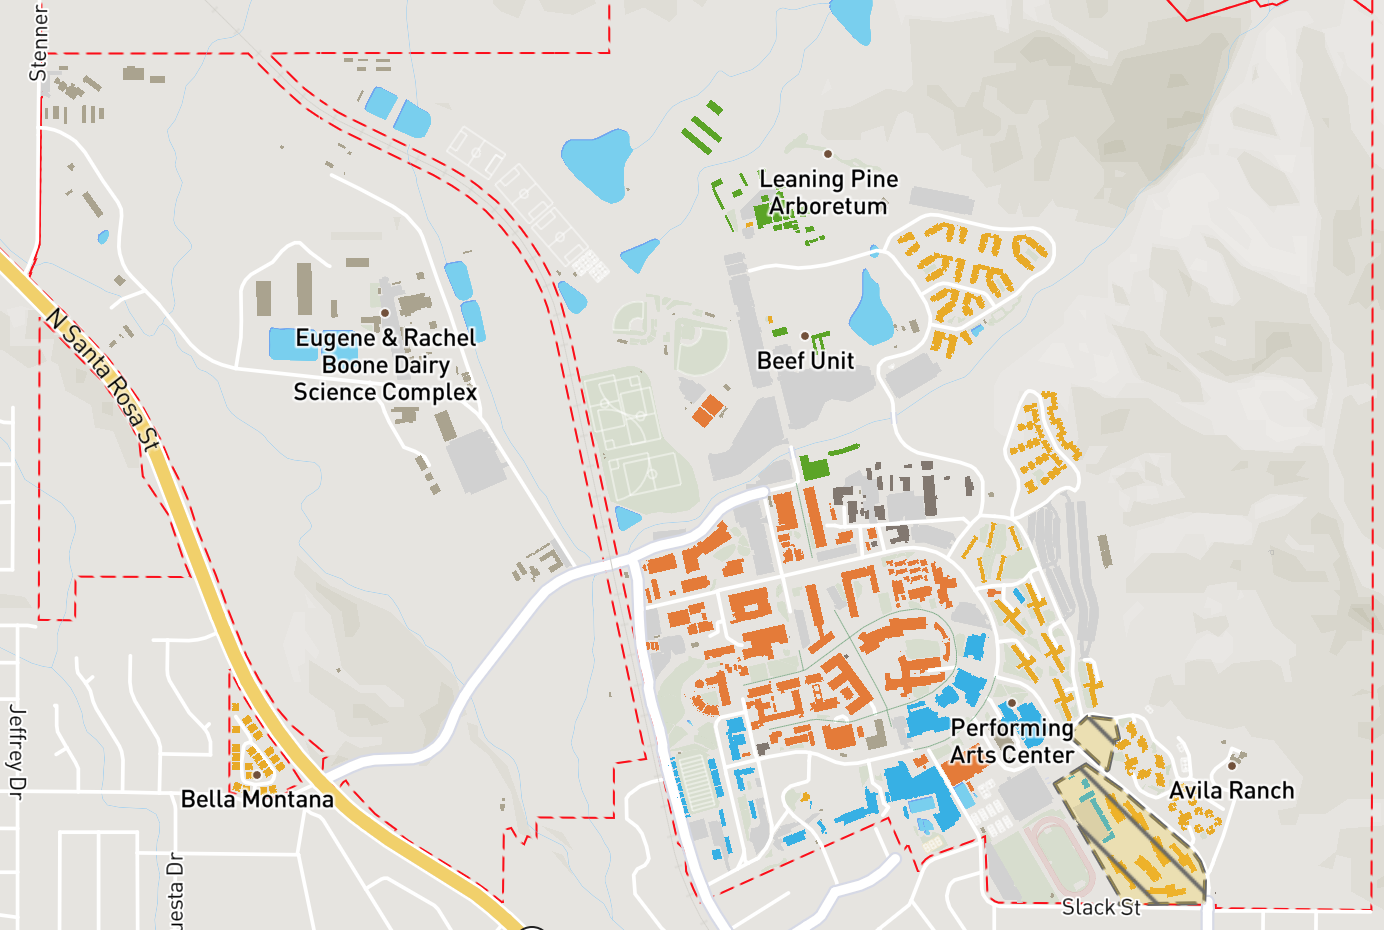 General Information - CCI - Cal Poly, San Luis Obispo on ucsd map, georgia tech map, sonoma state map, california map, georgetown map, duke map, cornell map, houghton college map, usc map, cal state northridge map, camp slo map, uc riverside map, cal state pomona map, sacramento state map, poly canyon trail map, valparaiso map, uc irvine map, loyola marymount map, cal state san luis obispo, weber state map,